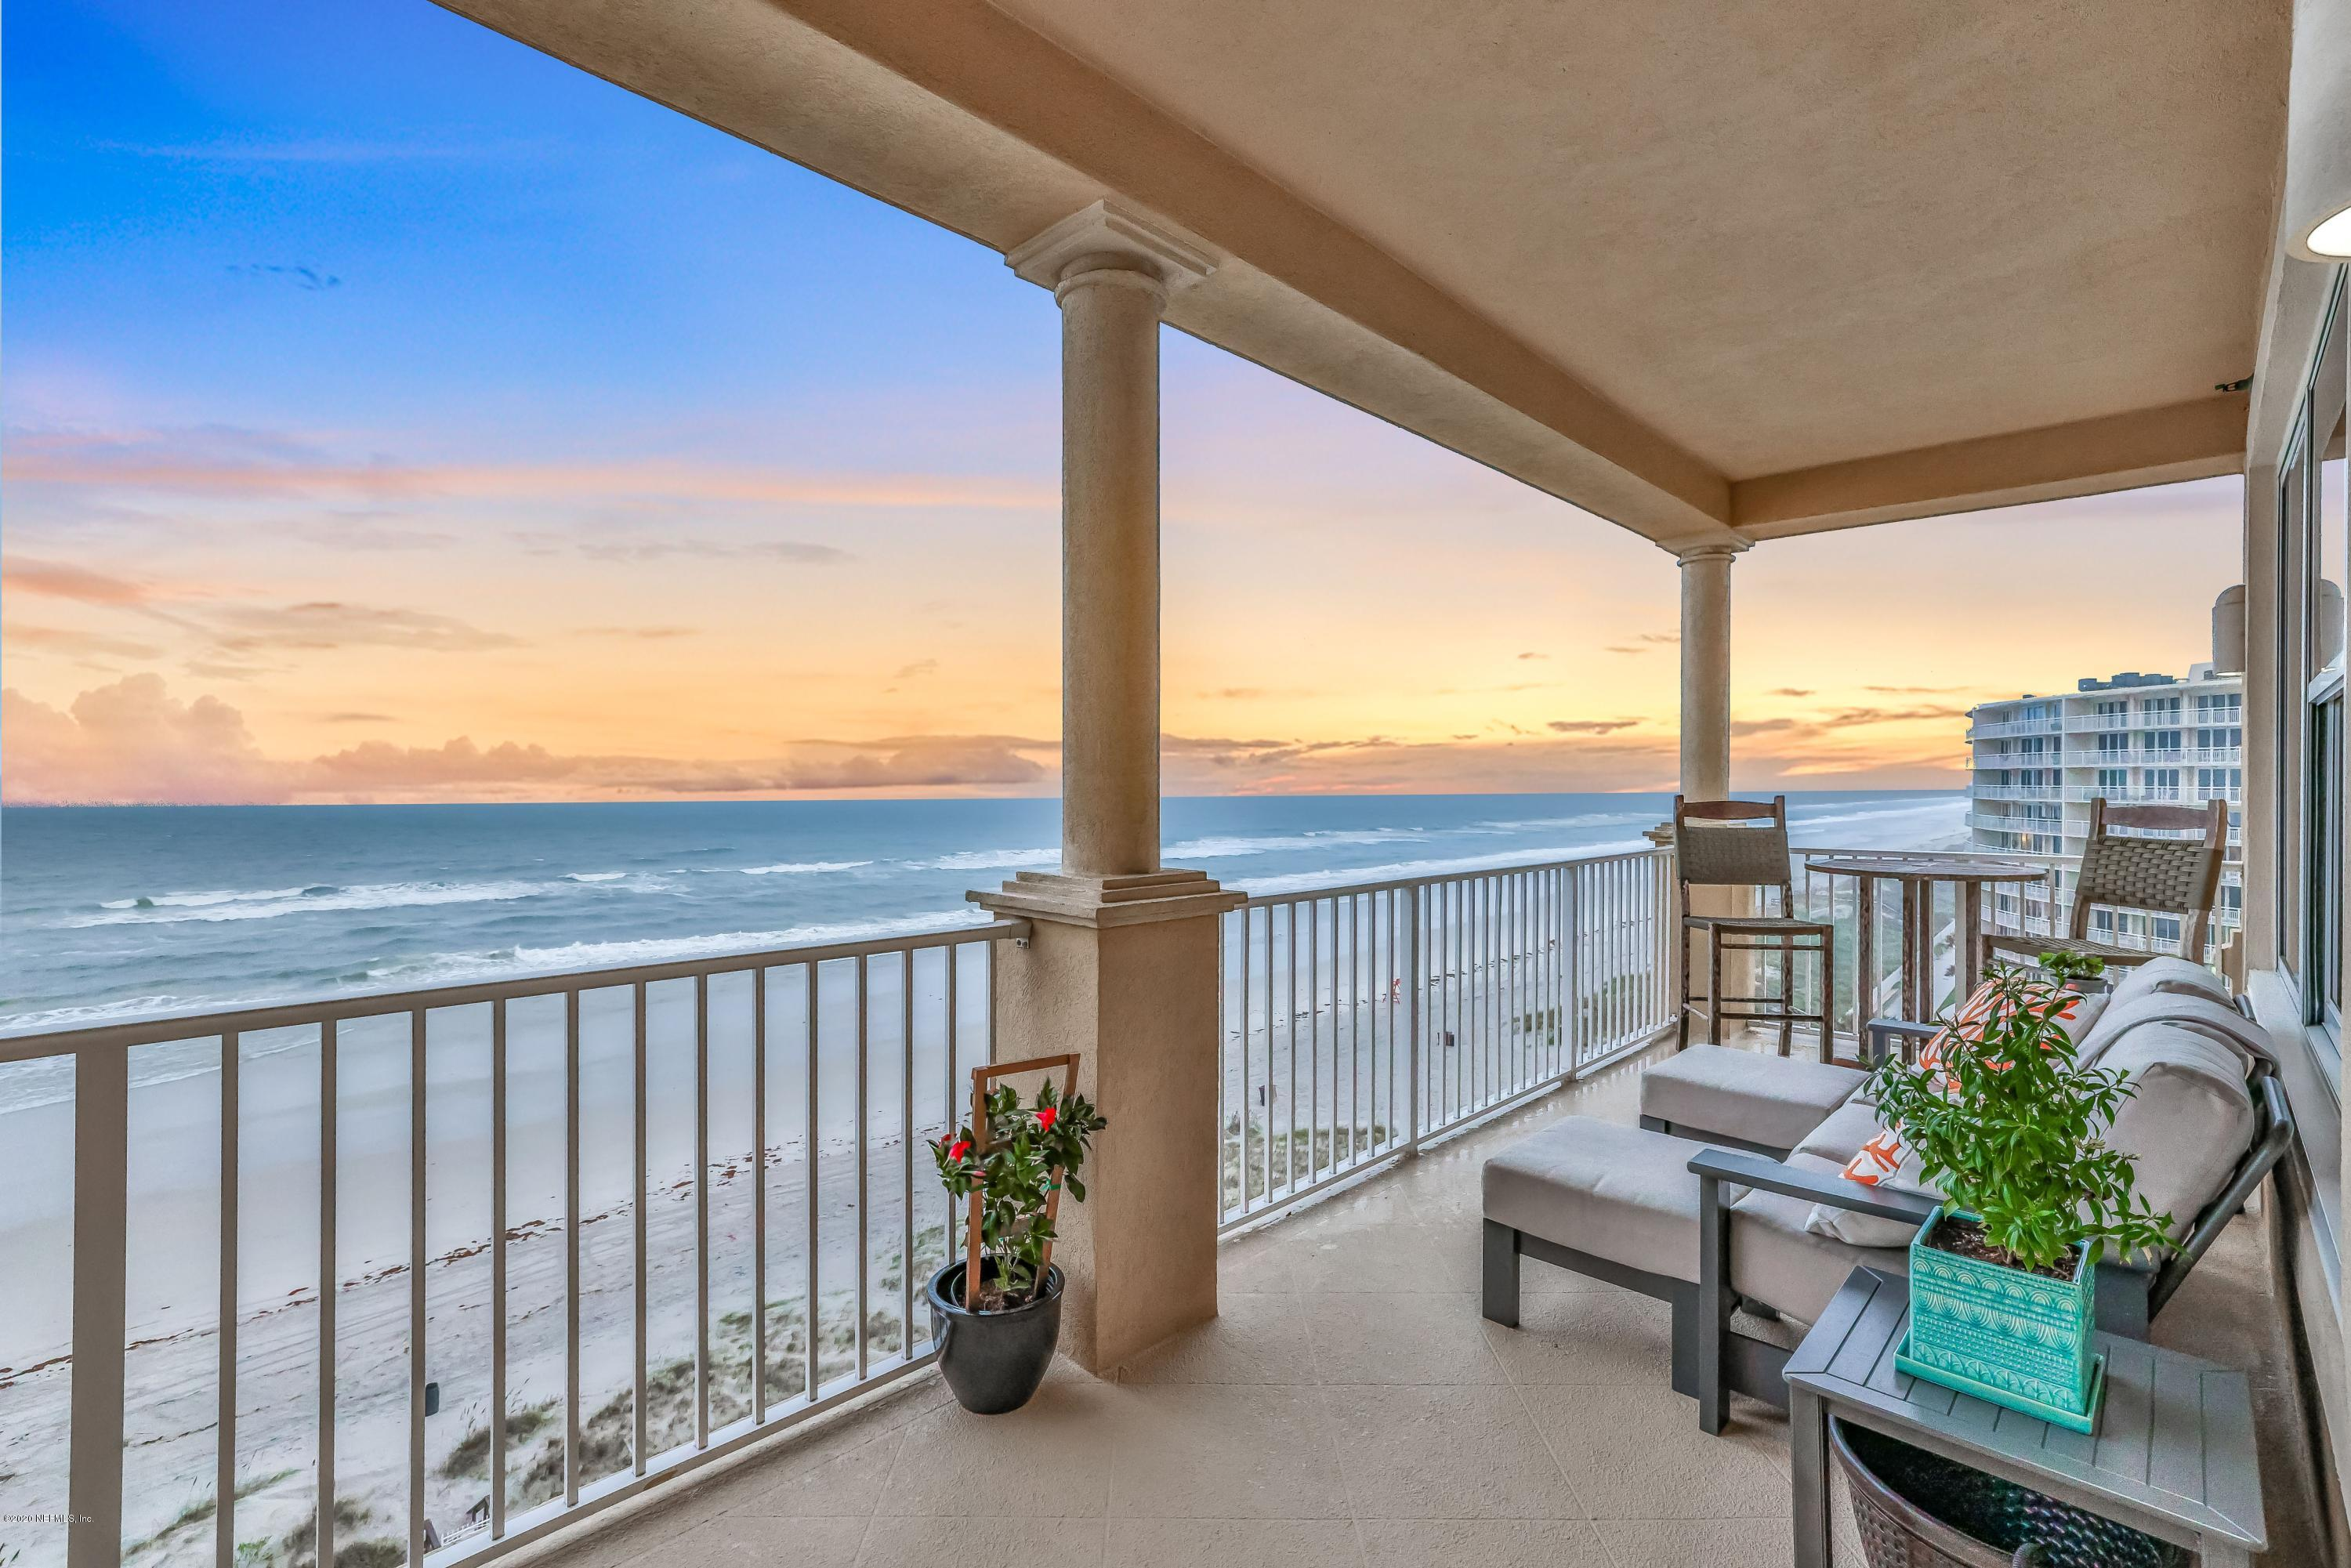 Property for sale at 1505 1ST ST S # 802, Jacksonville Beach,  Florida 32250